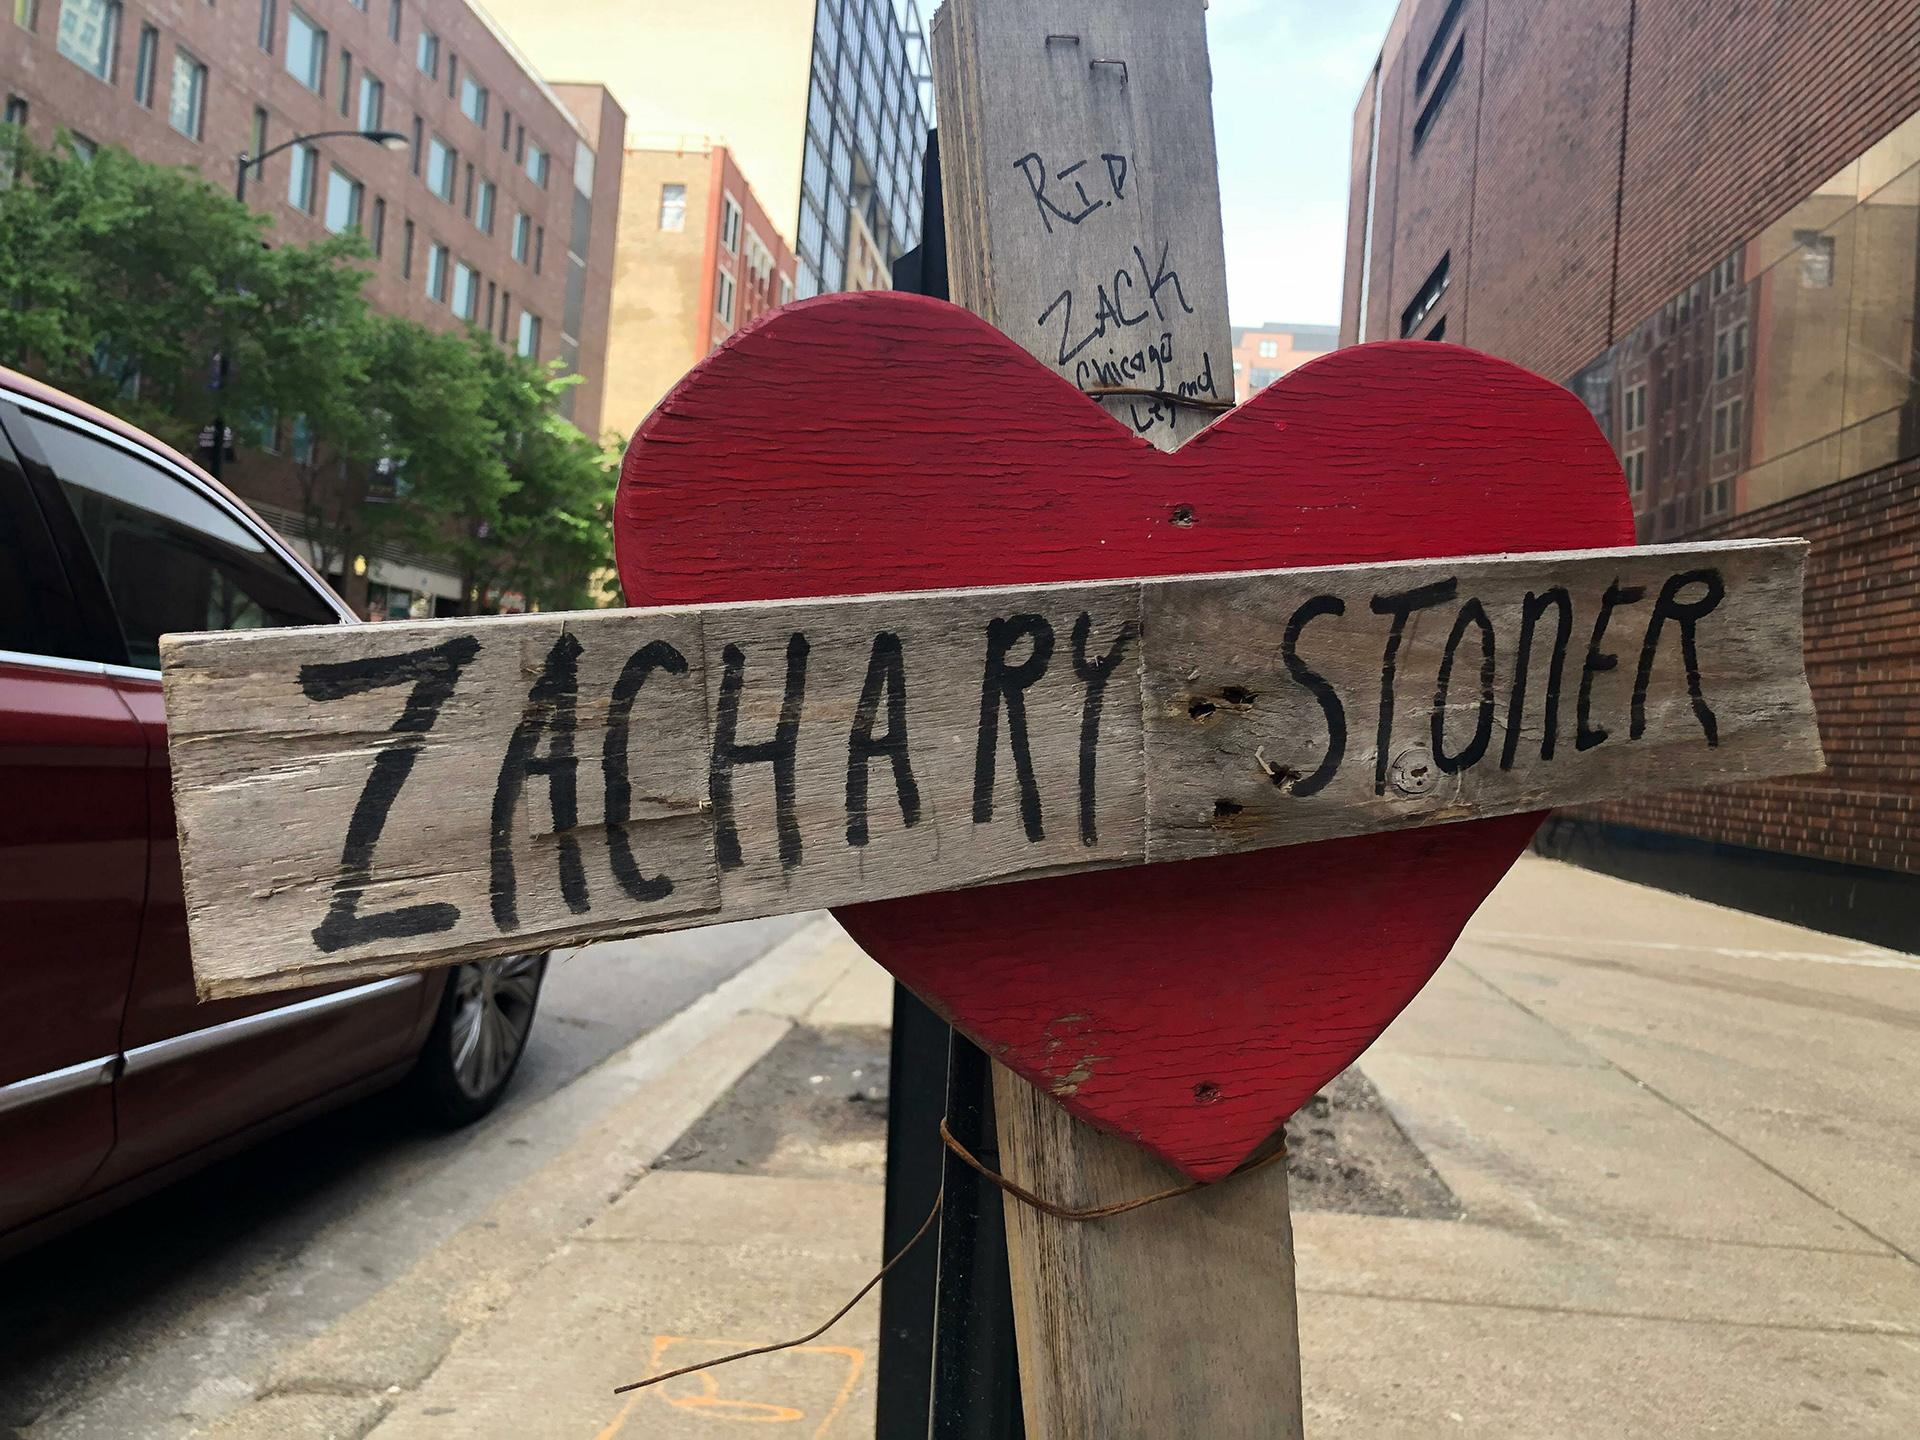 In this May 22, 2019 photo, a makeshift cross marking the spot where Zachary Stoner was killed on May 30, 2018, in a drive-by shooting in downtown Chicago. (AP Photo / Michael Tarm)